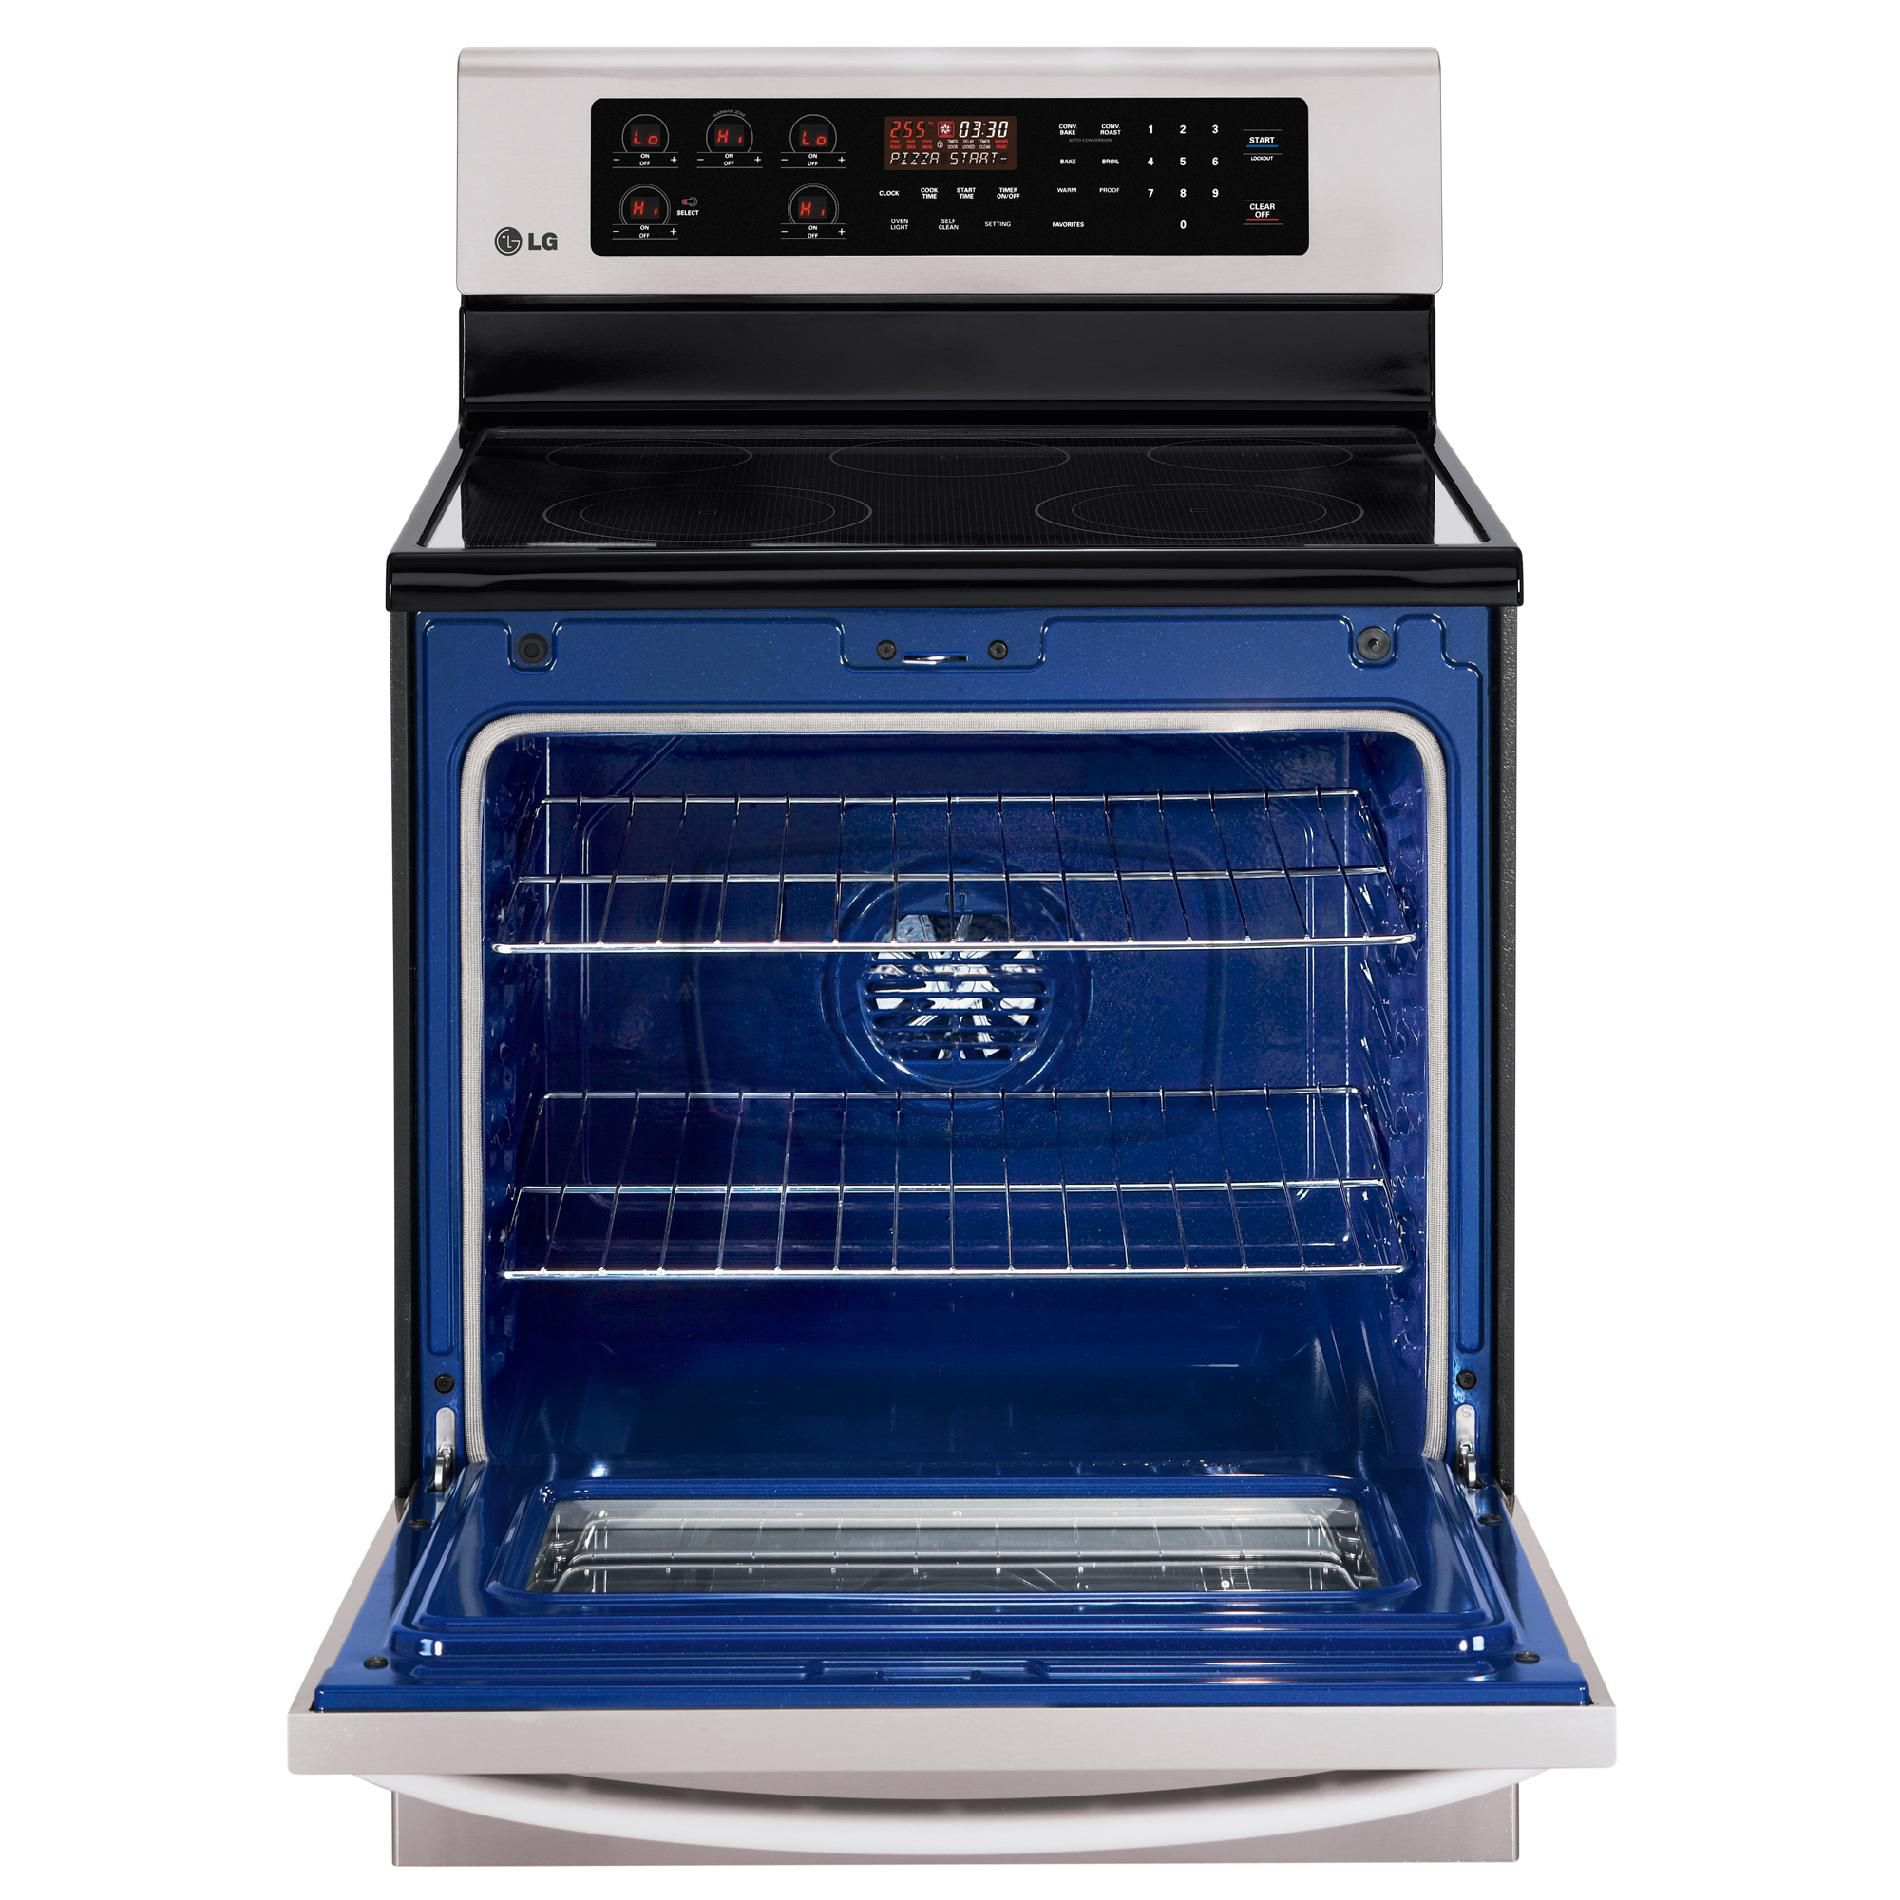 LG 6.3 cu. ft. Self-Cleaning Electric Range - Stainless Steel